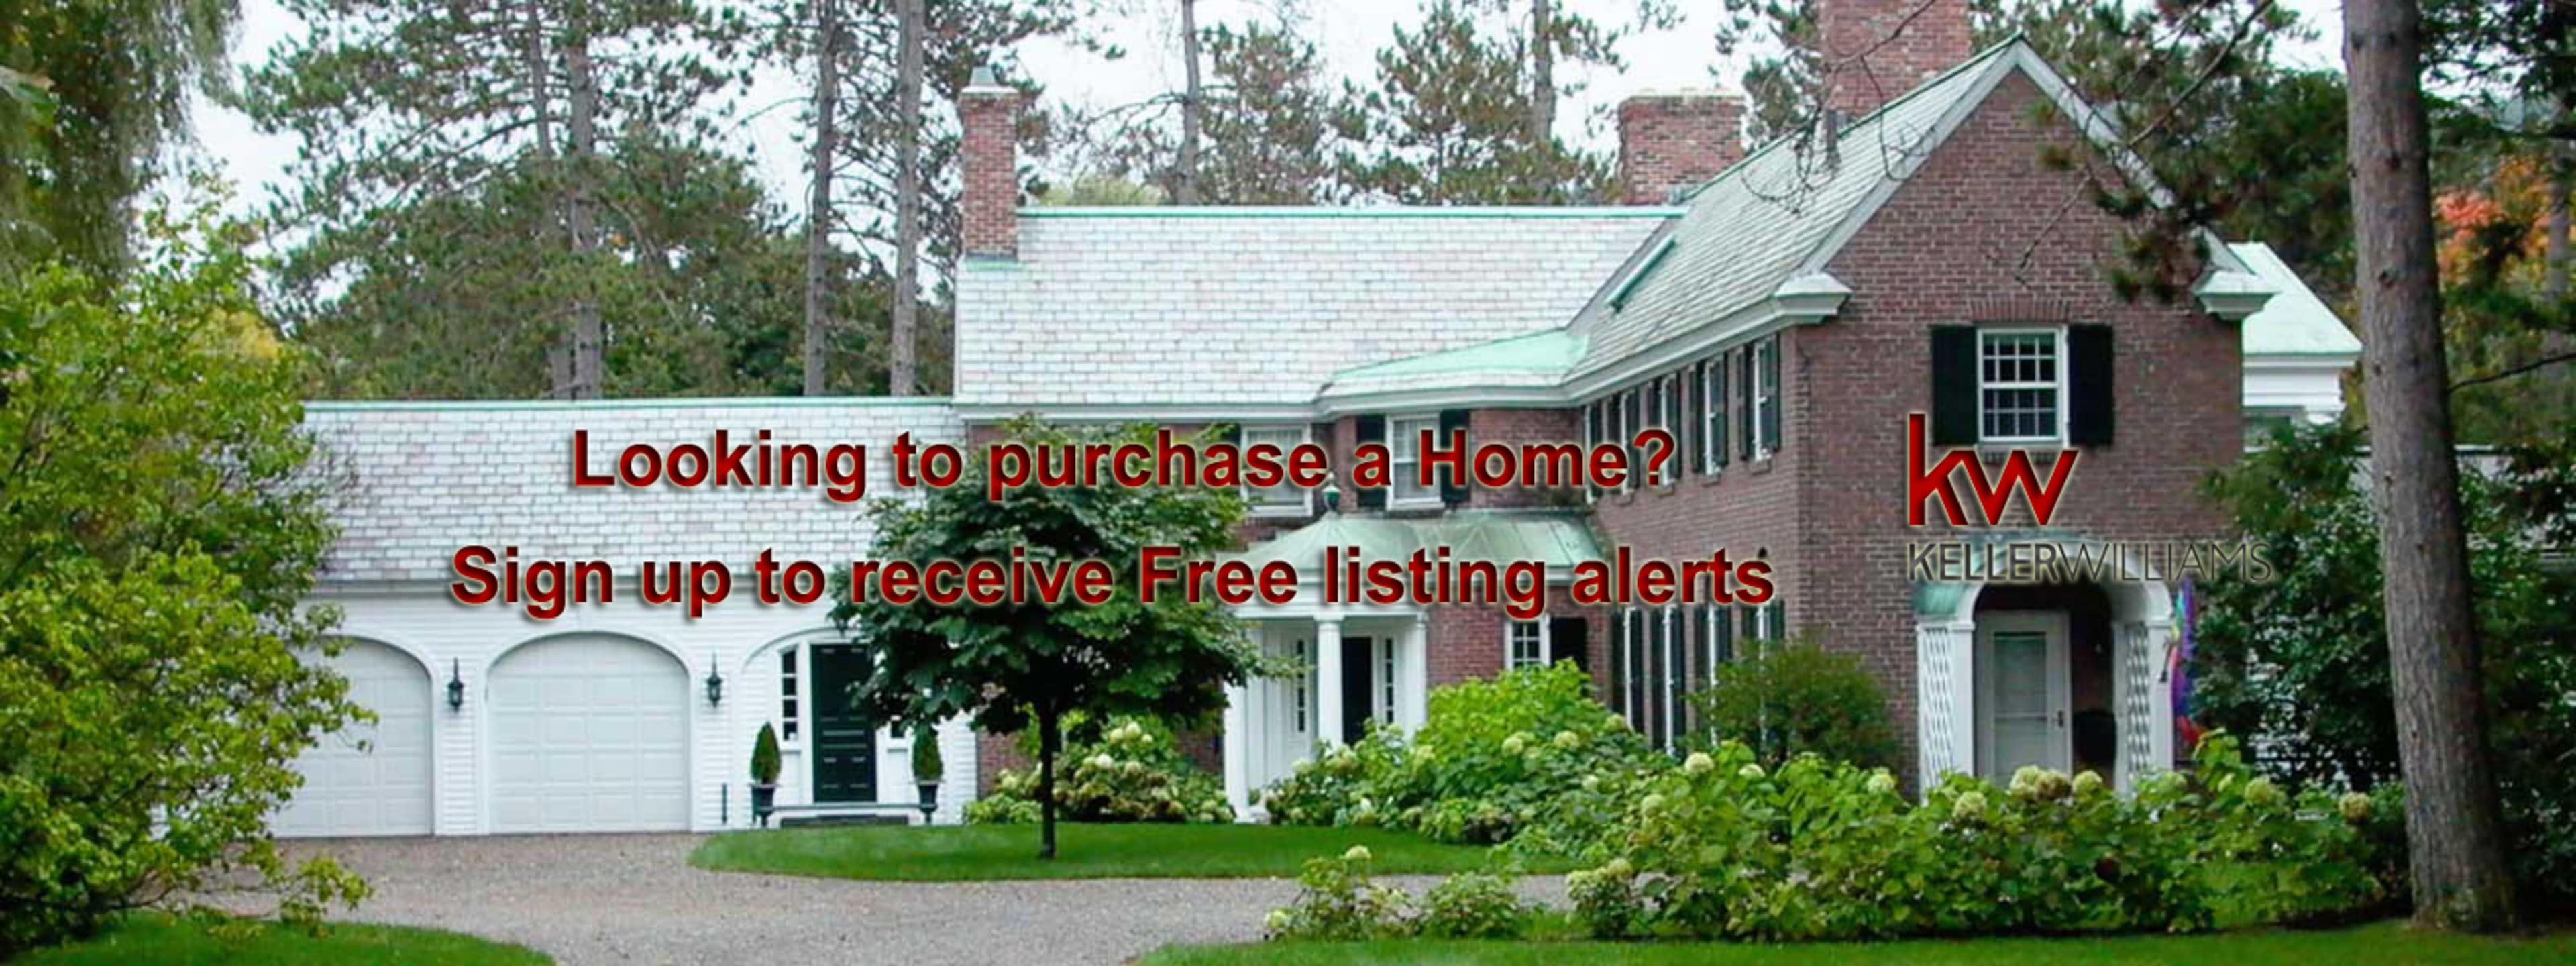 sign up to receive free home listing alerts